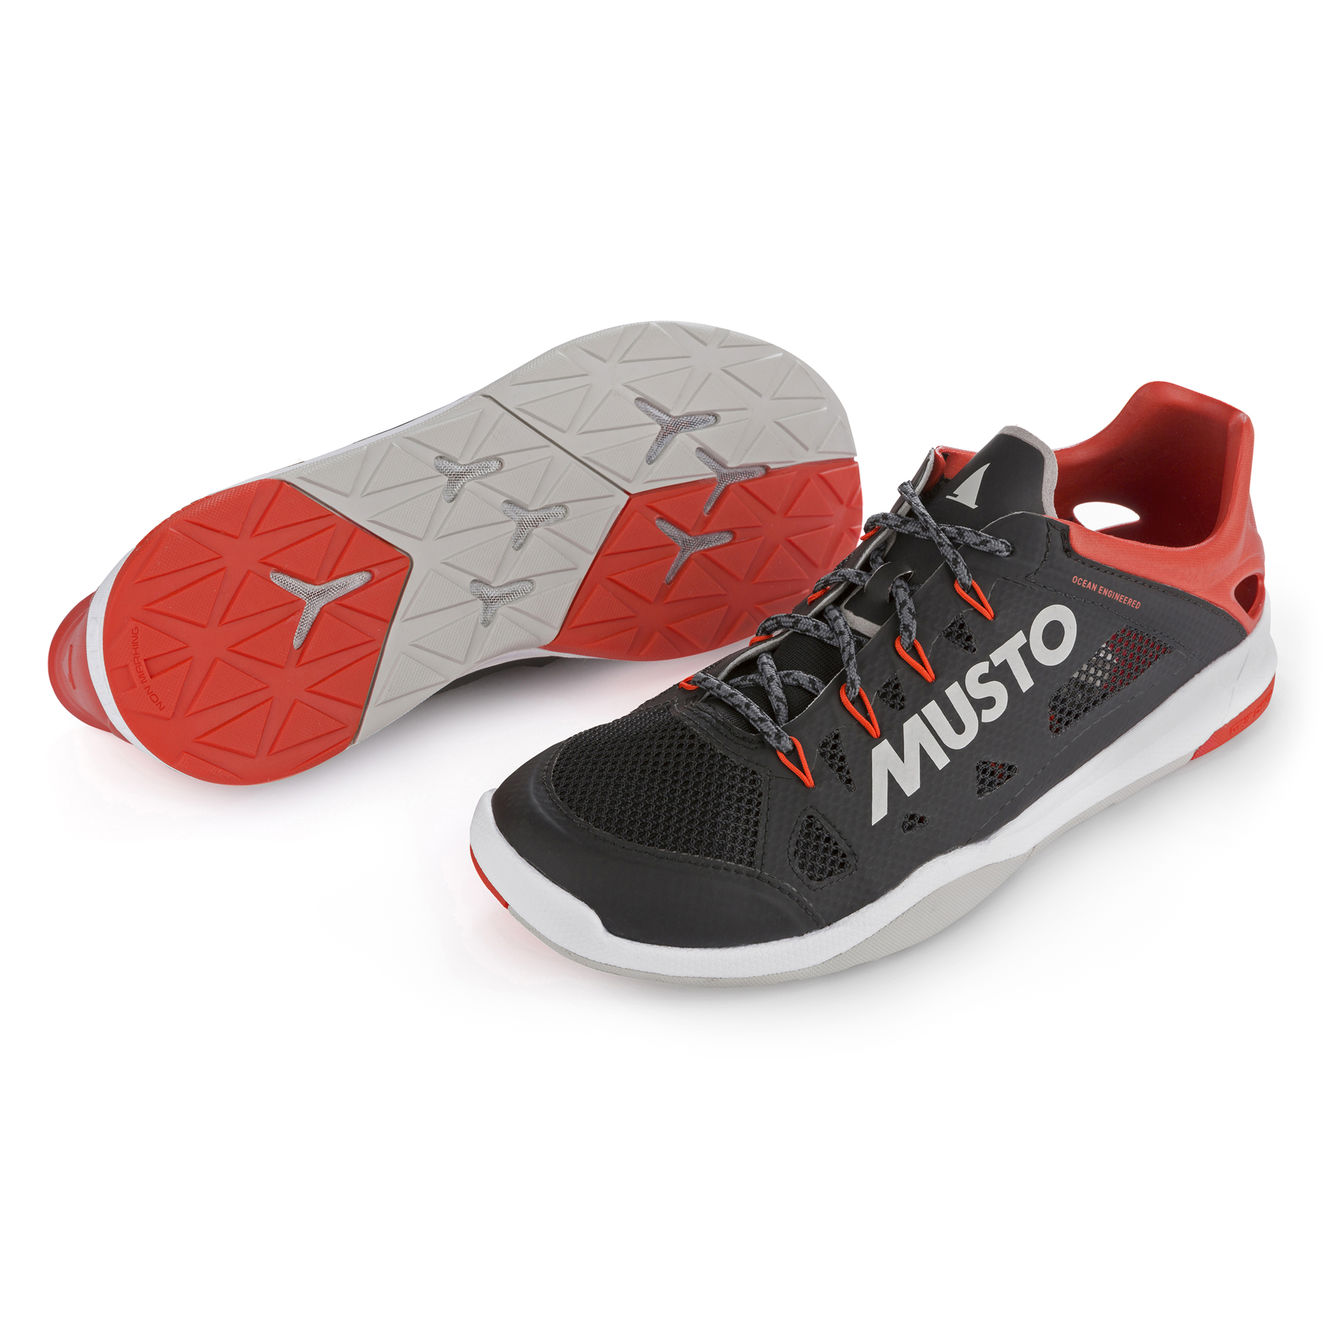 Dynamic Pro II Musto Sailing Shoes Review